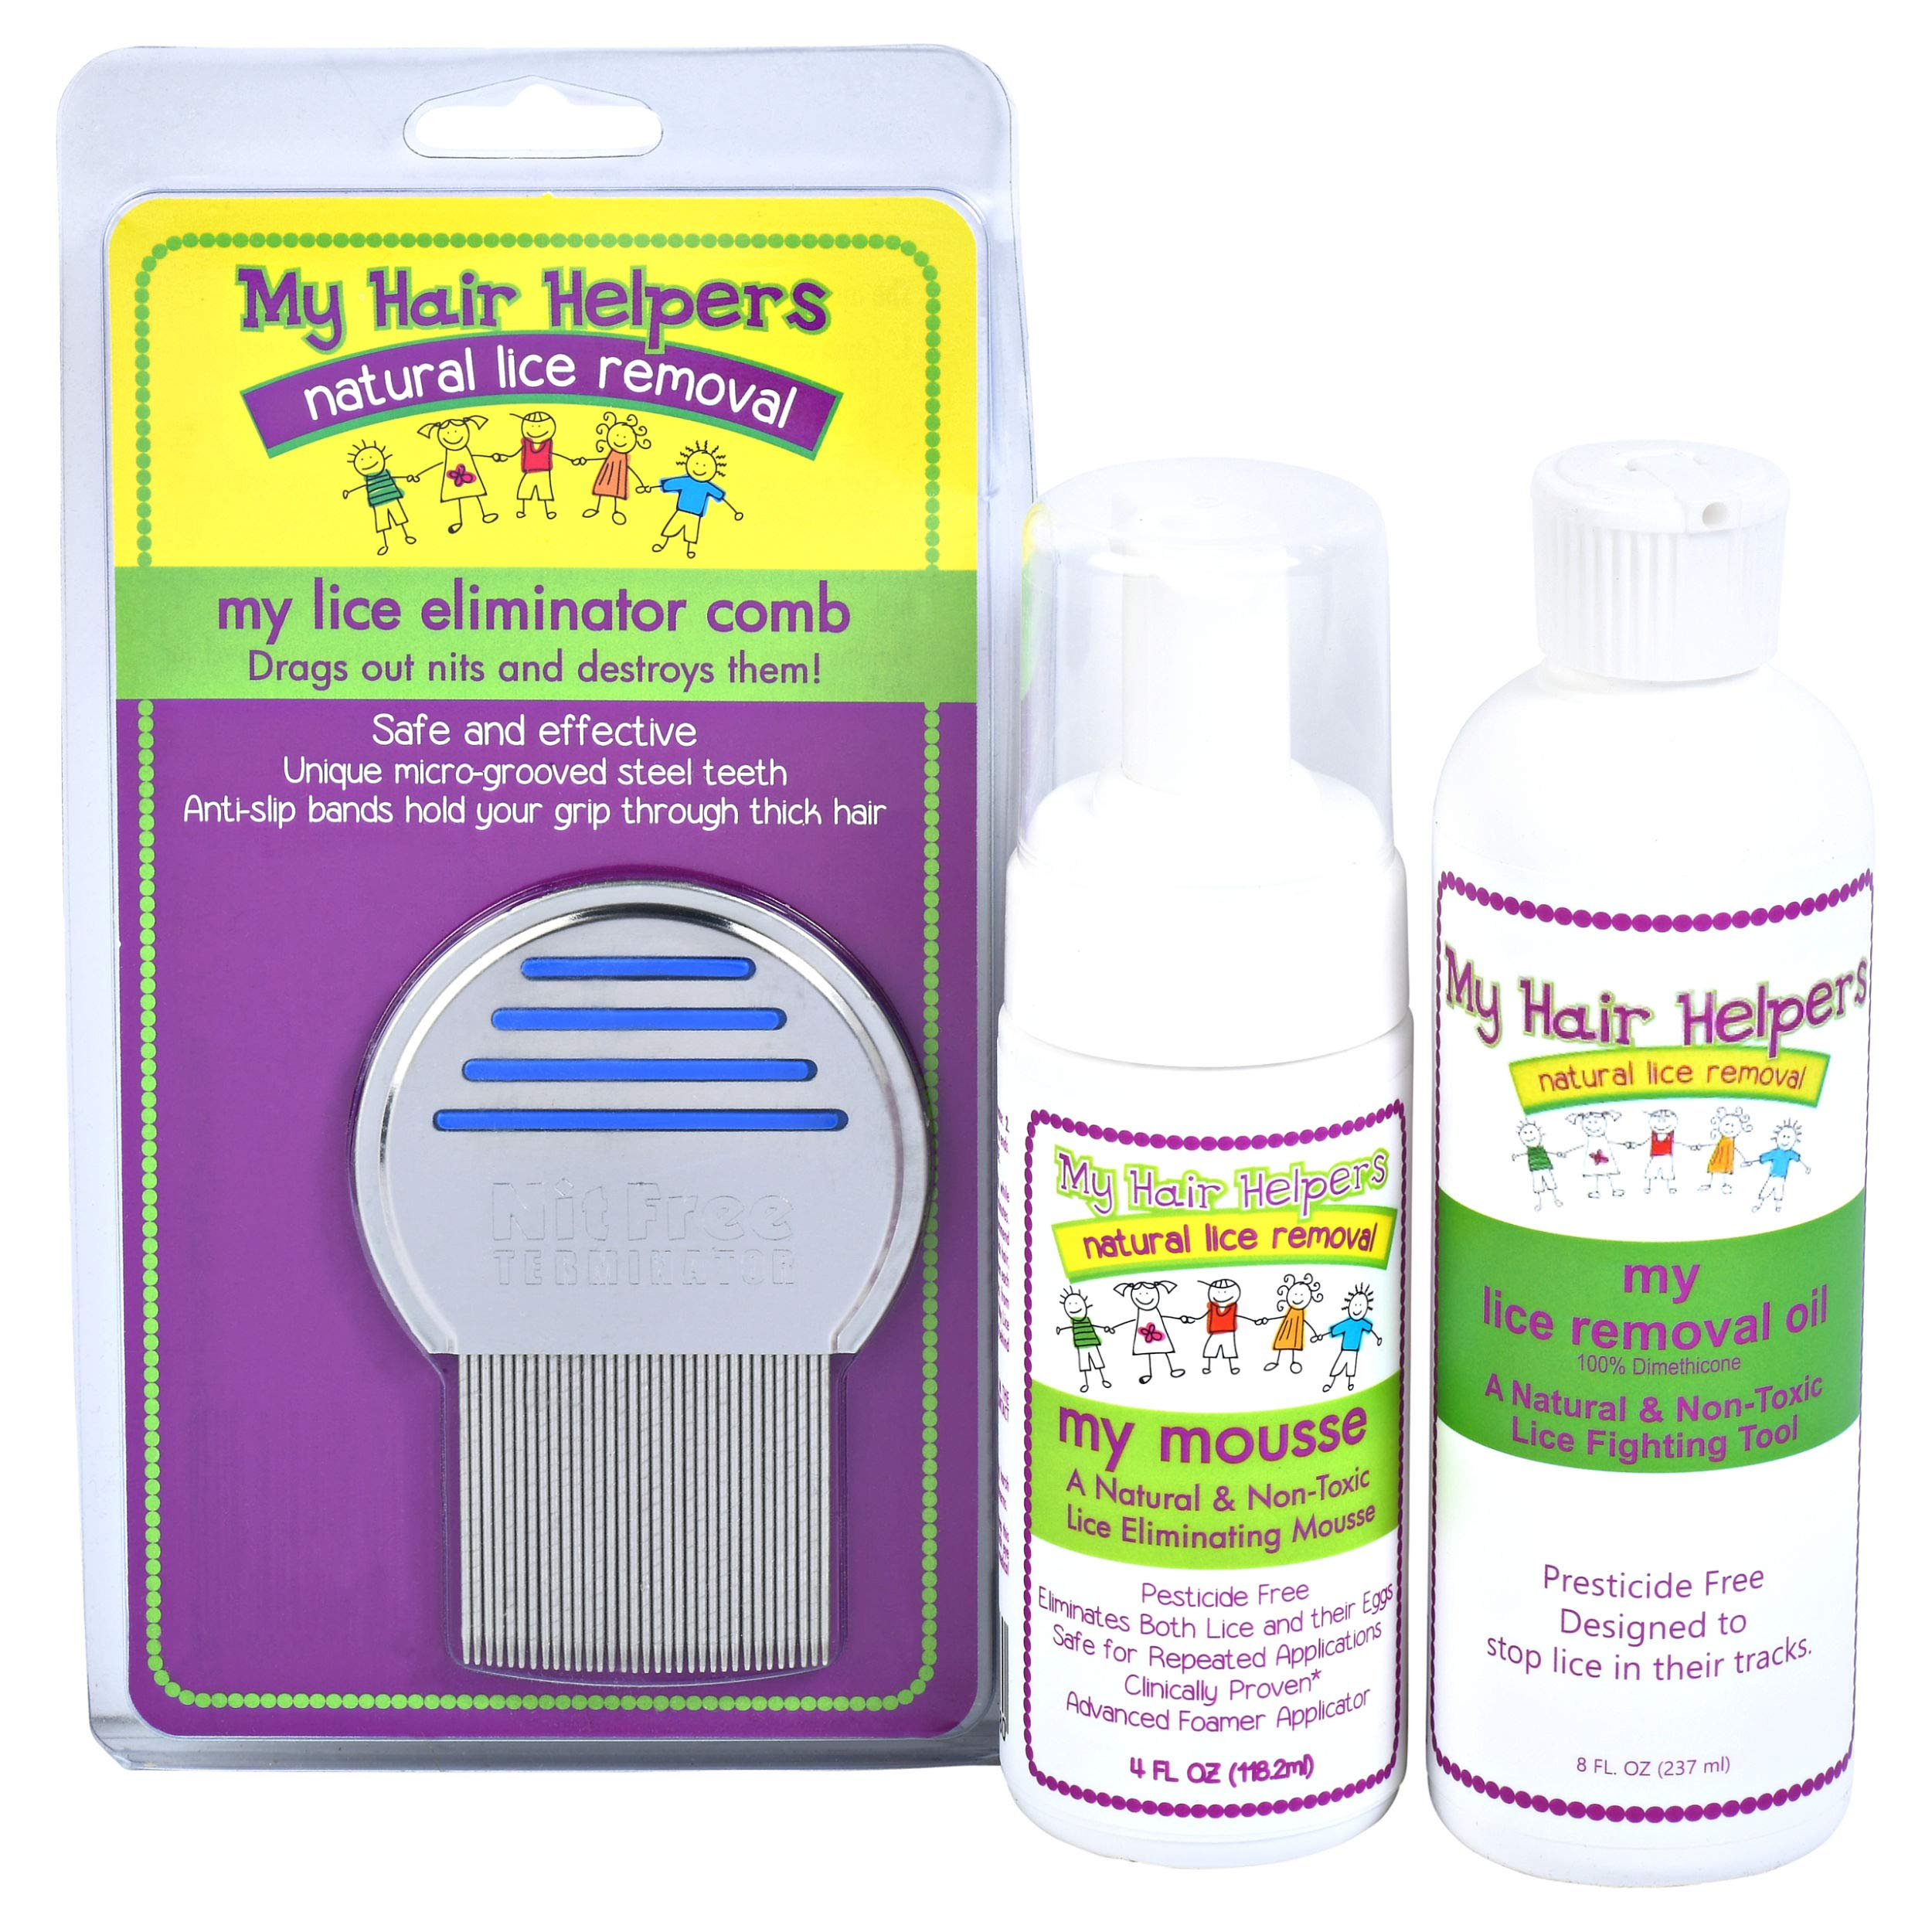 Lice Free Treatment Kit for Kids - Nit Removal Comb, Dimethicone Oil, and Foam Mousse | Natural Pesticide-Free Non Toxic Way to Remove Bugs and Eggs in Hair I Treats 1-2 Children by MY HAIR HELPERS NATURAL LICE REMOVAL